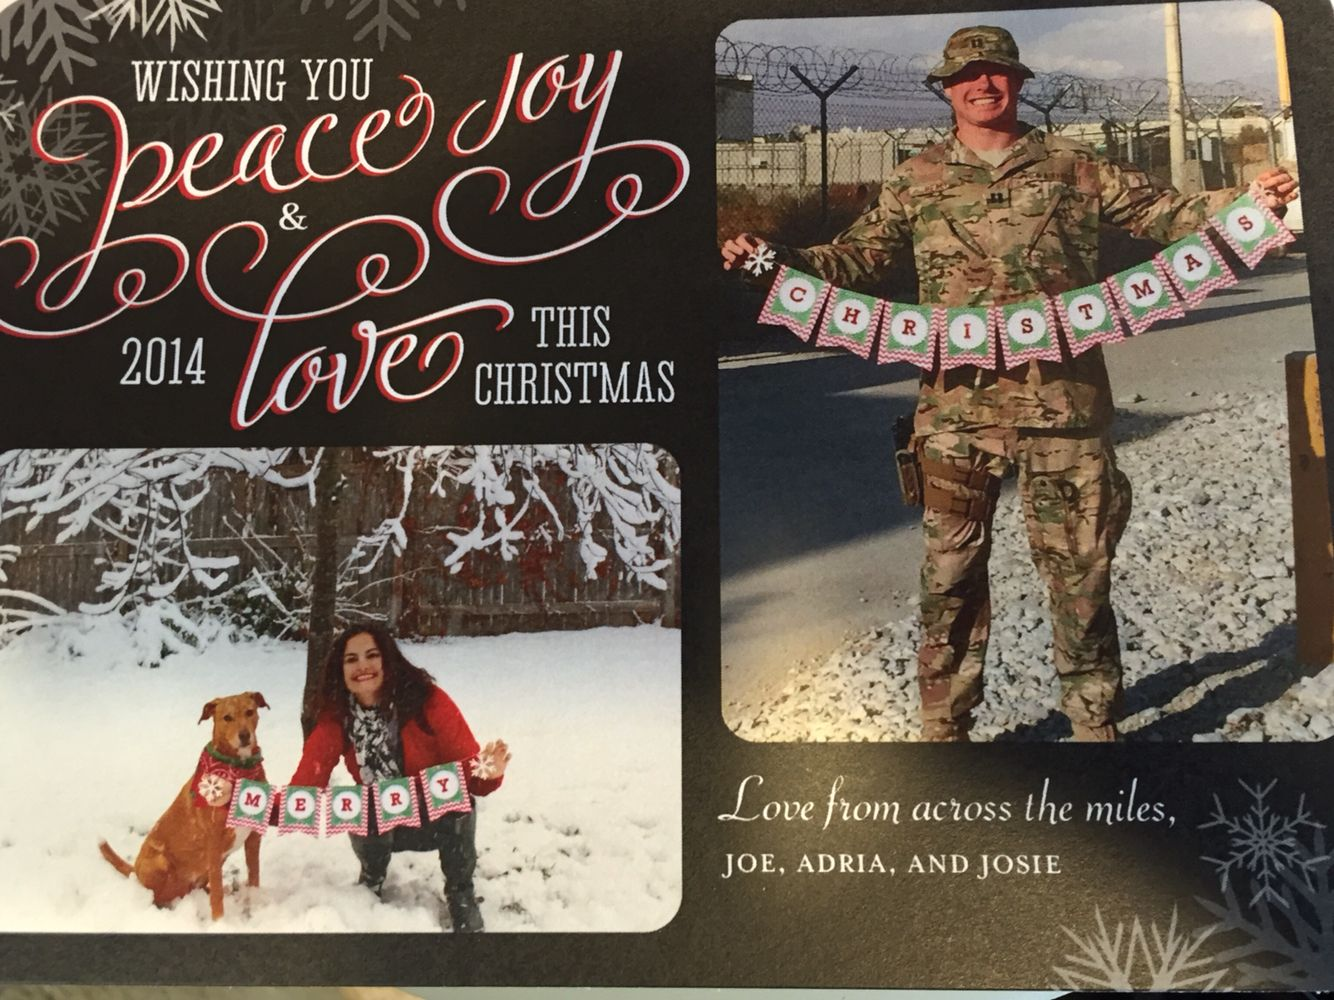 Our deployment Christmas cards were a big hit! Can't wait